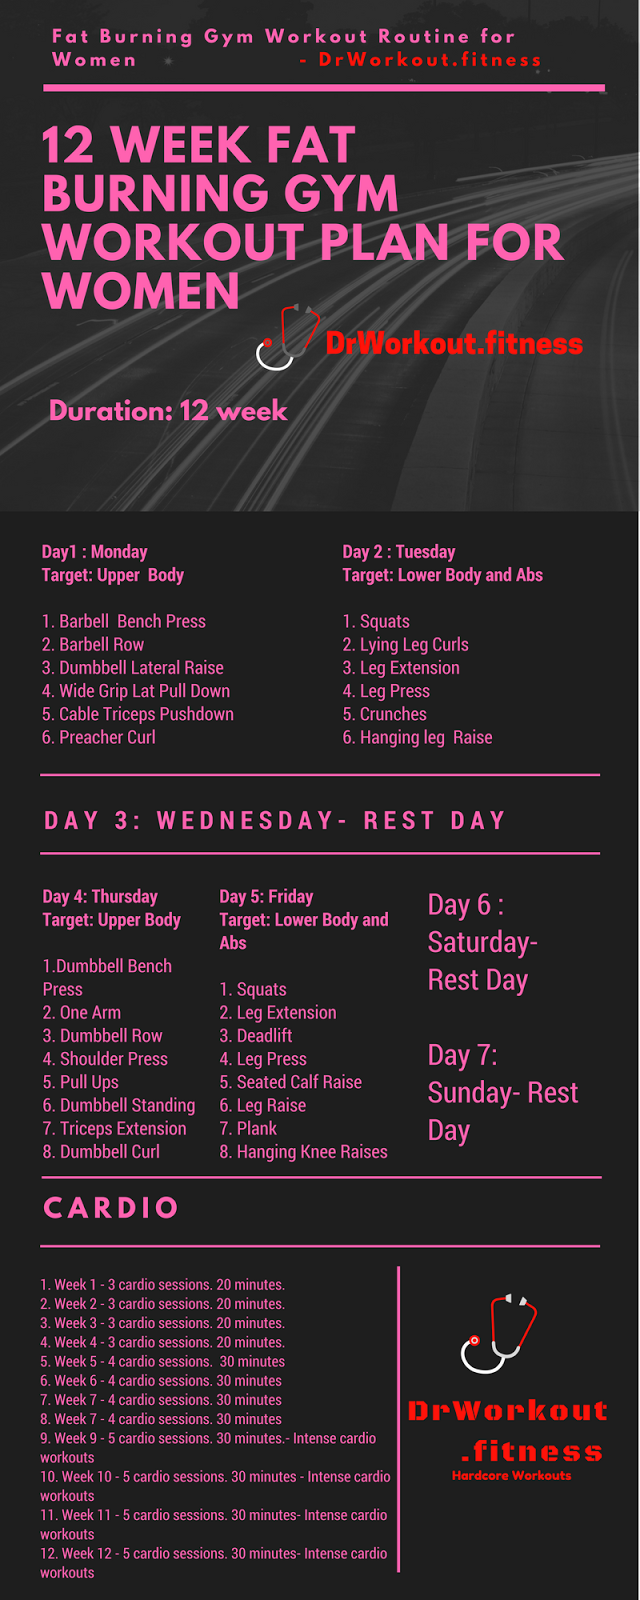 Fat Loss Gym Workout Plan for Women - 12 Week Exercise Program